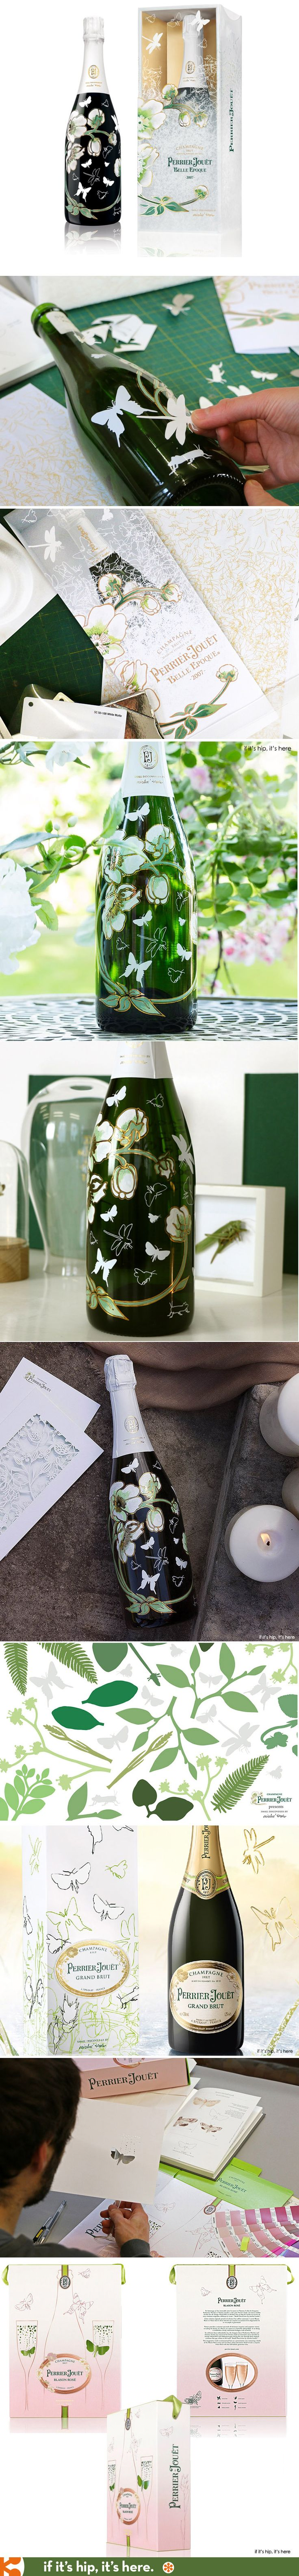 mischer'traxler studio's bottle and packaging for Perrier Jouet's Vintage 2007 Belle Epoque, Blason Rosé and Grand Brut. Videos and more at the link.